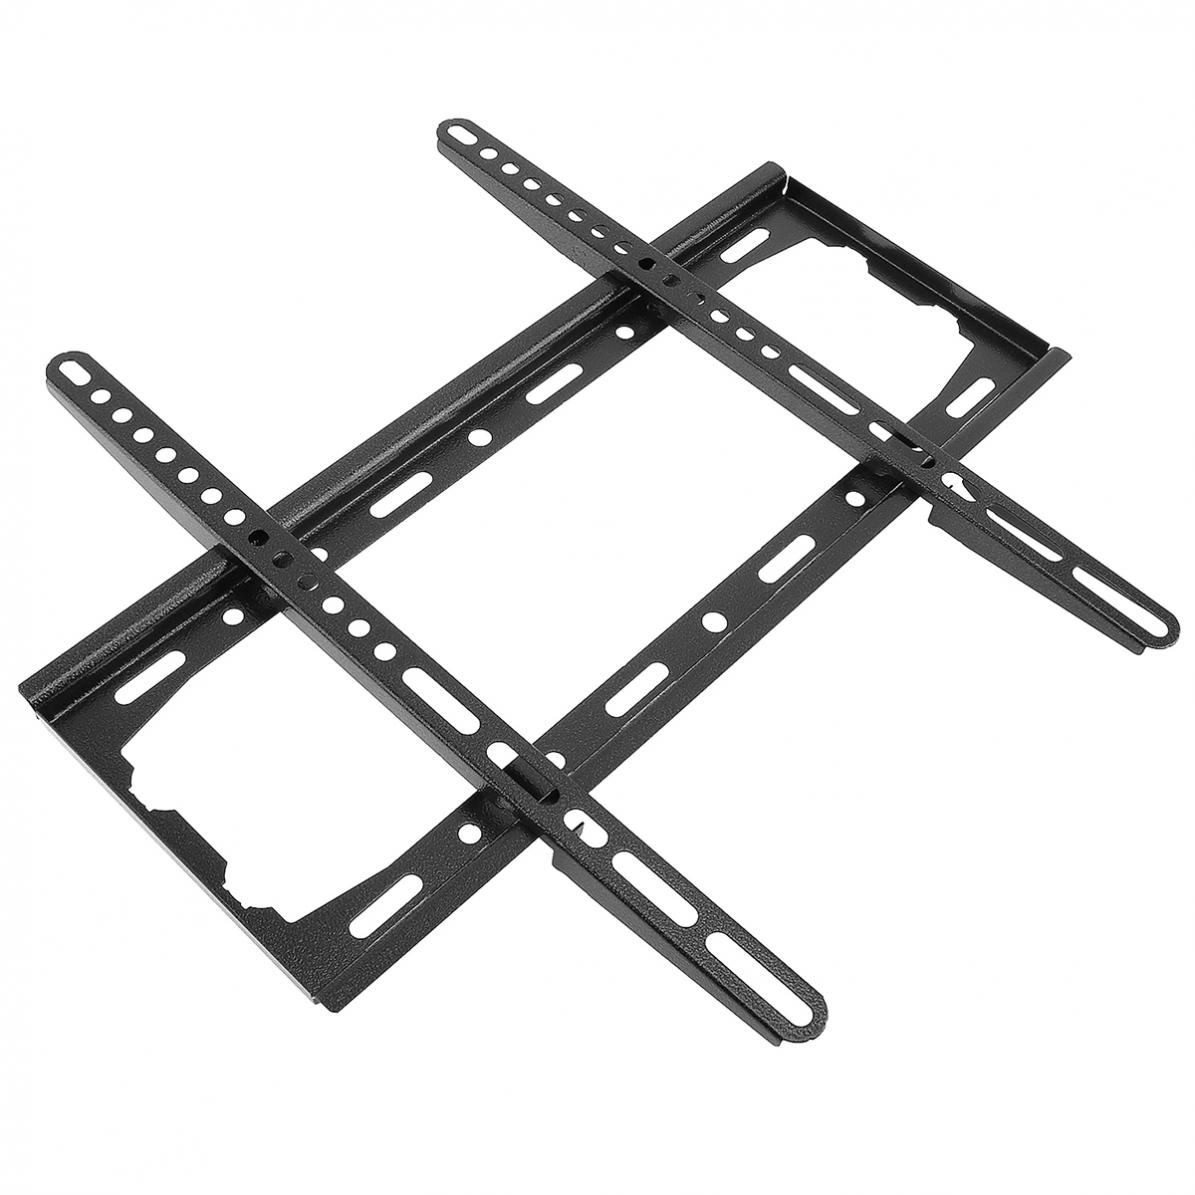 Image 4 - Universal convenient 45KG TV Wall Mount Bracket Fixed Flat Panel TV Frame for 26 55 Inch LCD LED Monitor Flat PanelTV Mount   - AliExpress